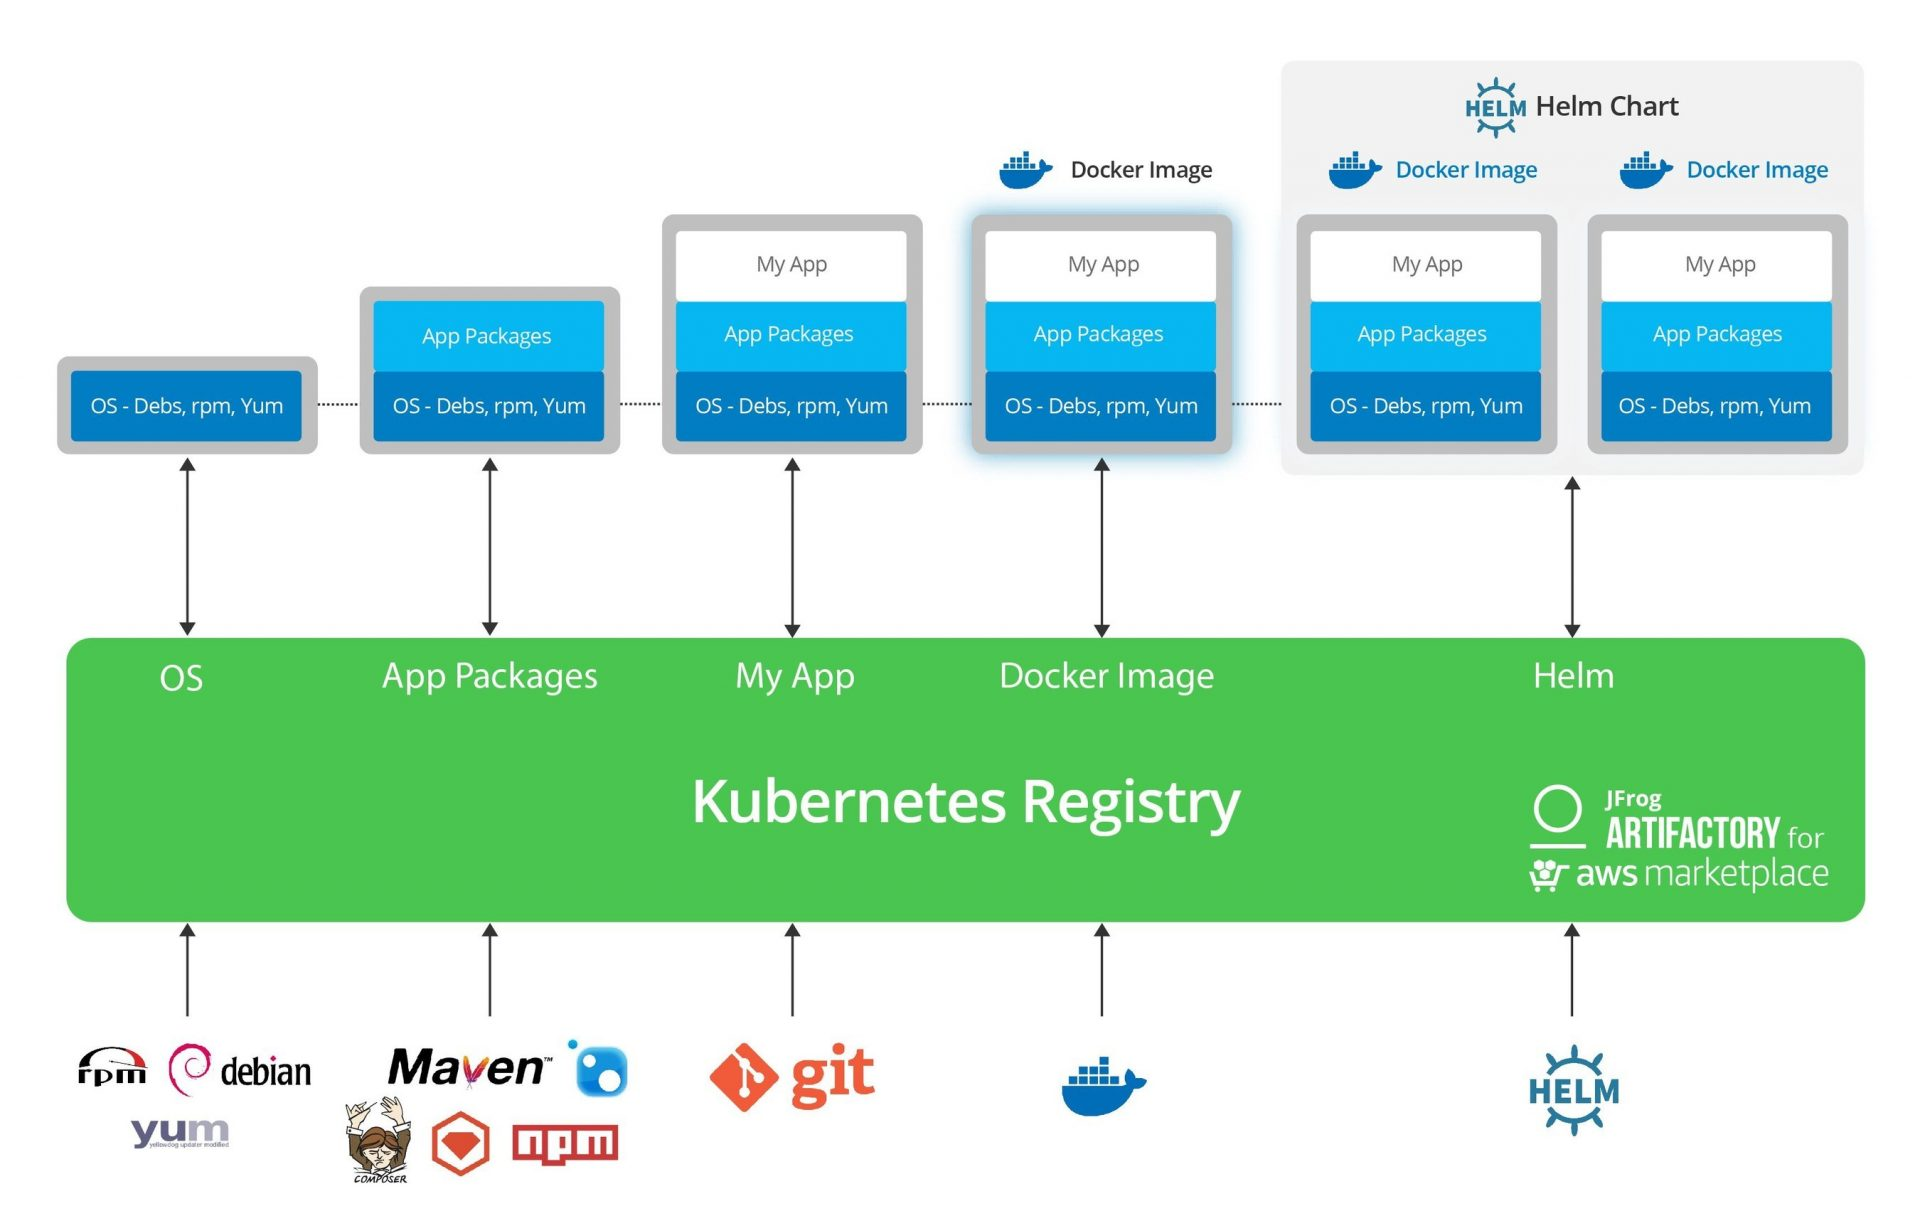 JFrog brings Kubernetes registry to Amazon Web Services Marketplace